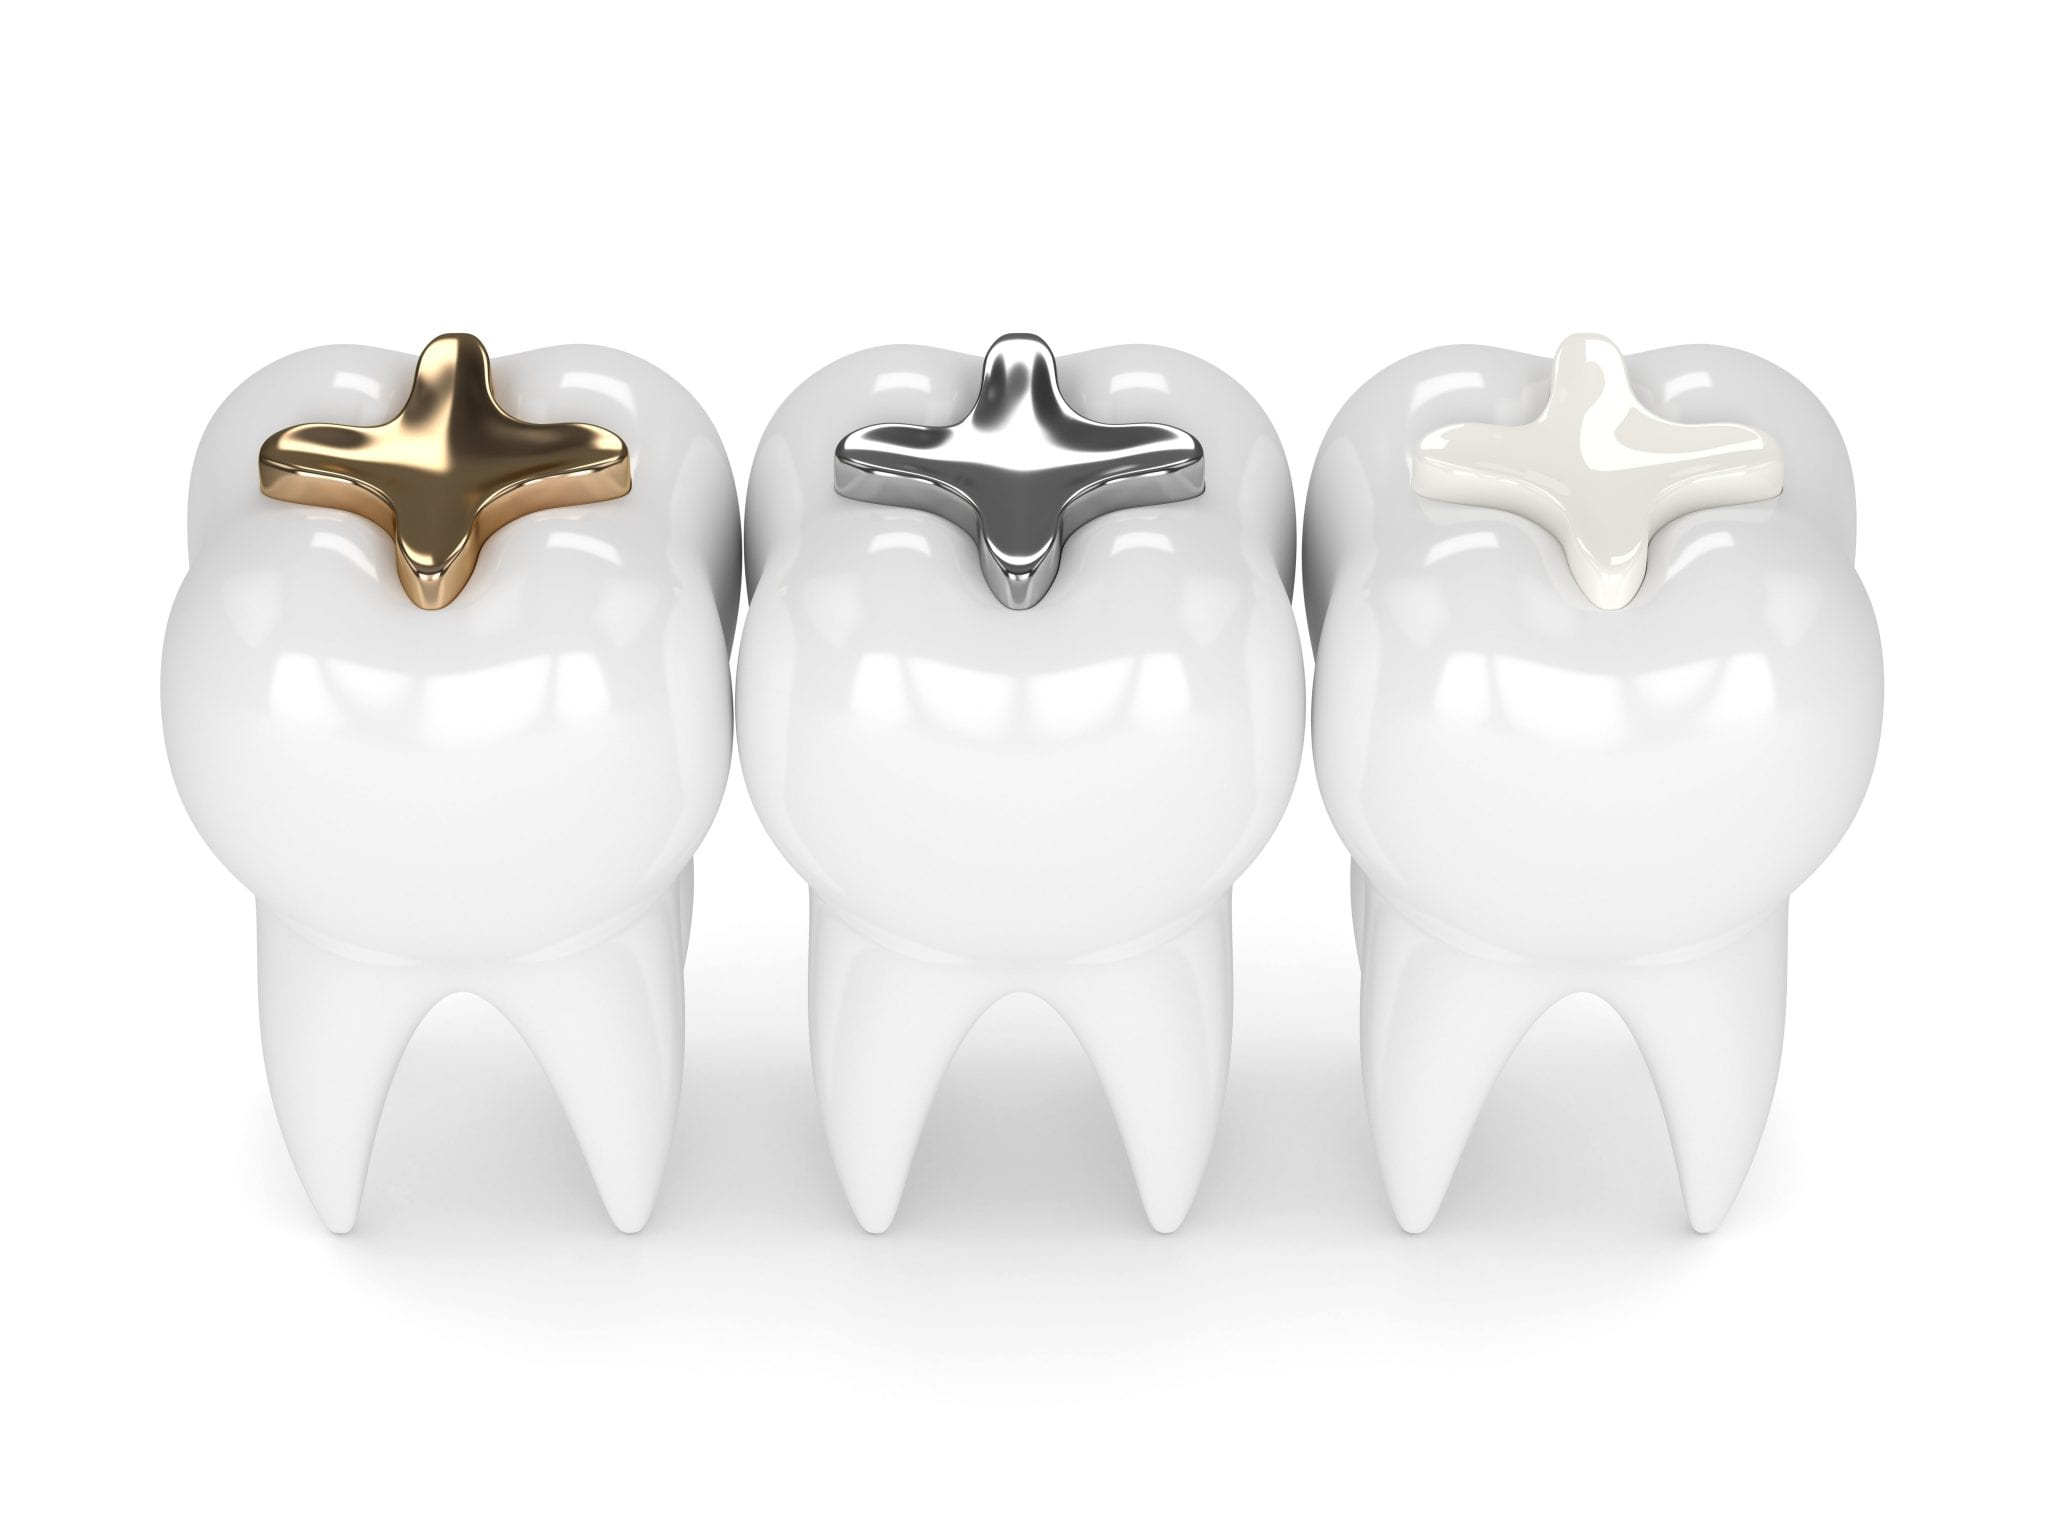 3d Render Of Teeth With Gold, Amalgam And Composite Inlay Dental